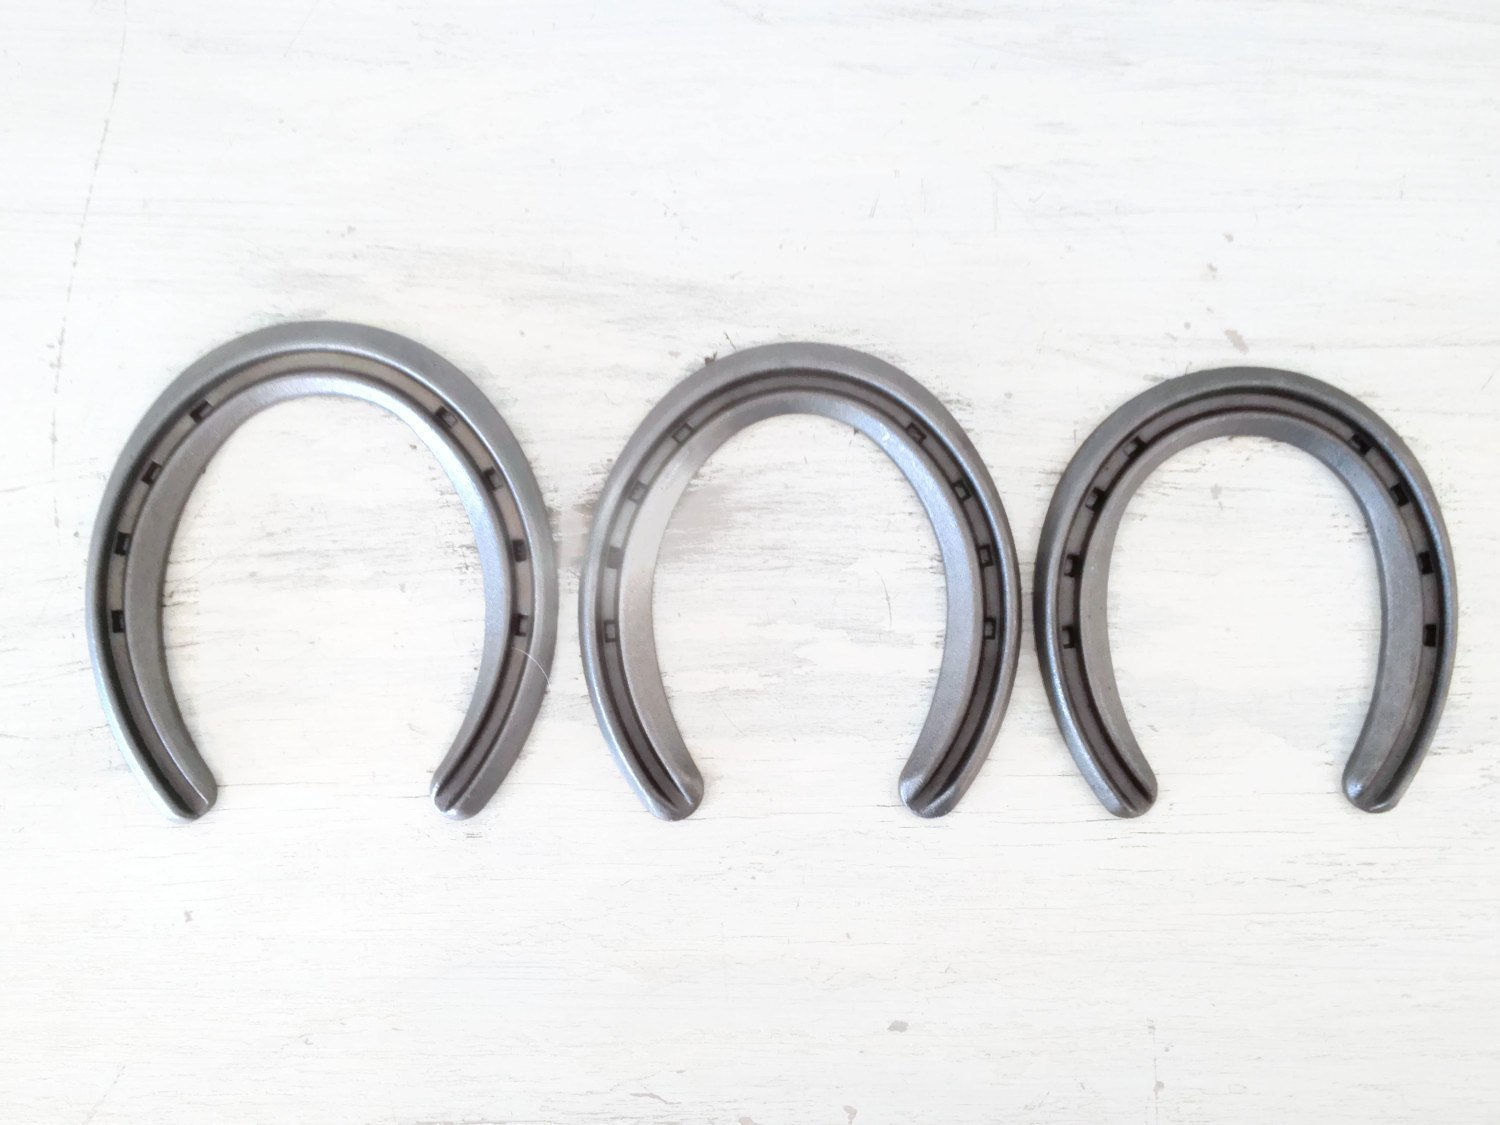 New Steel Horseshoes - Lite Rim Size 1 -Sand Blasted- Heritage Forge - 2 Shoes by The Heritage Forge (Image #3)